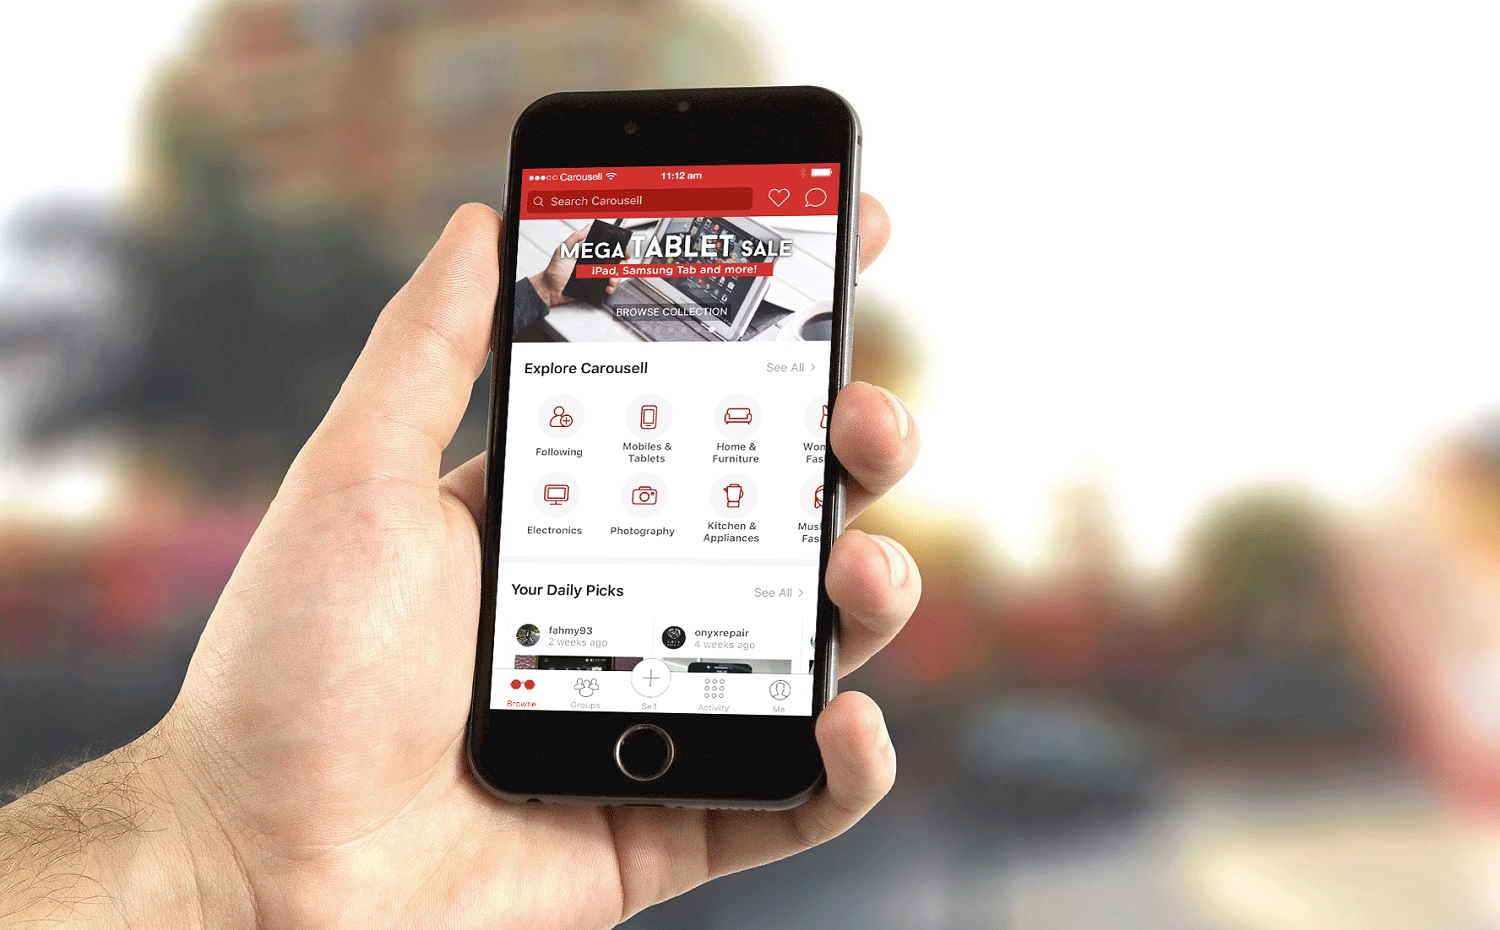 Carousell Records 45.1 Percent Surge in Listings During CNY